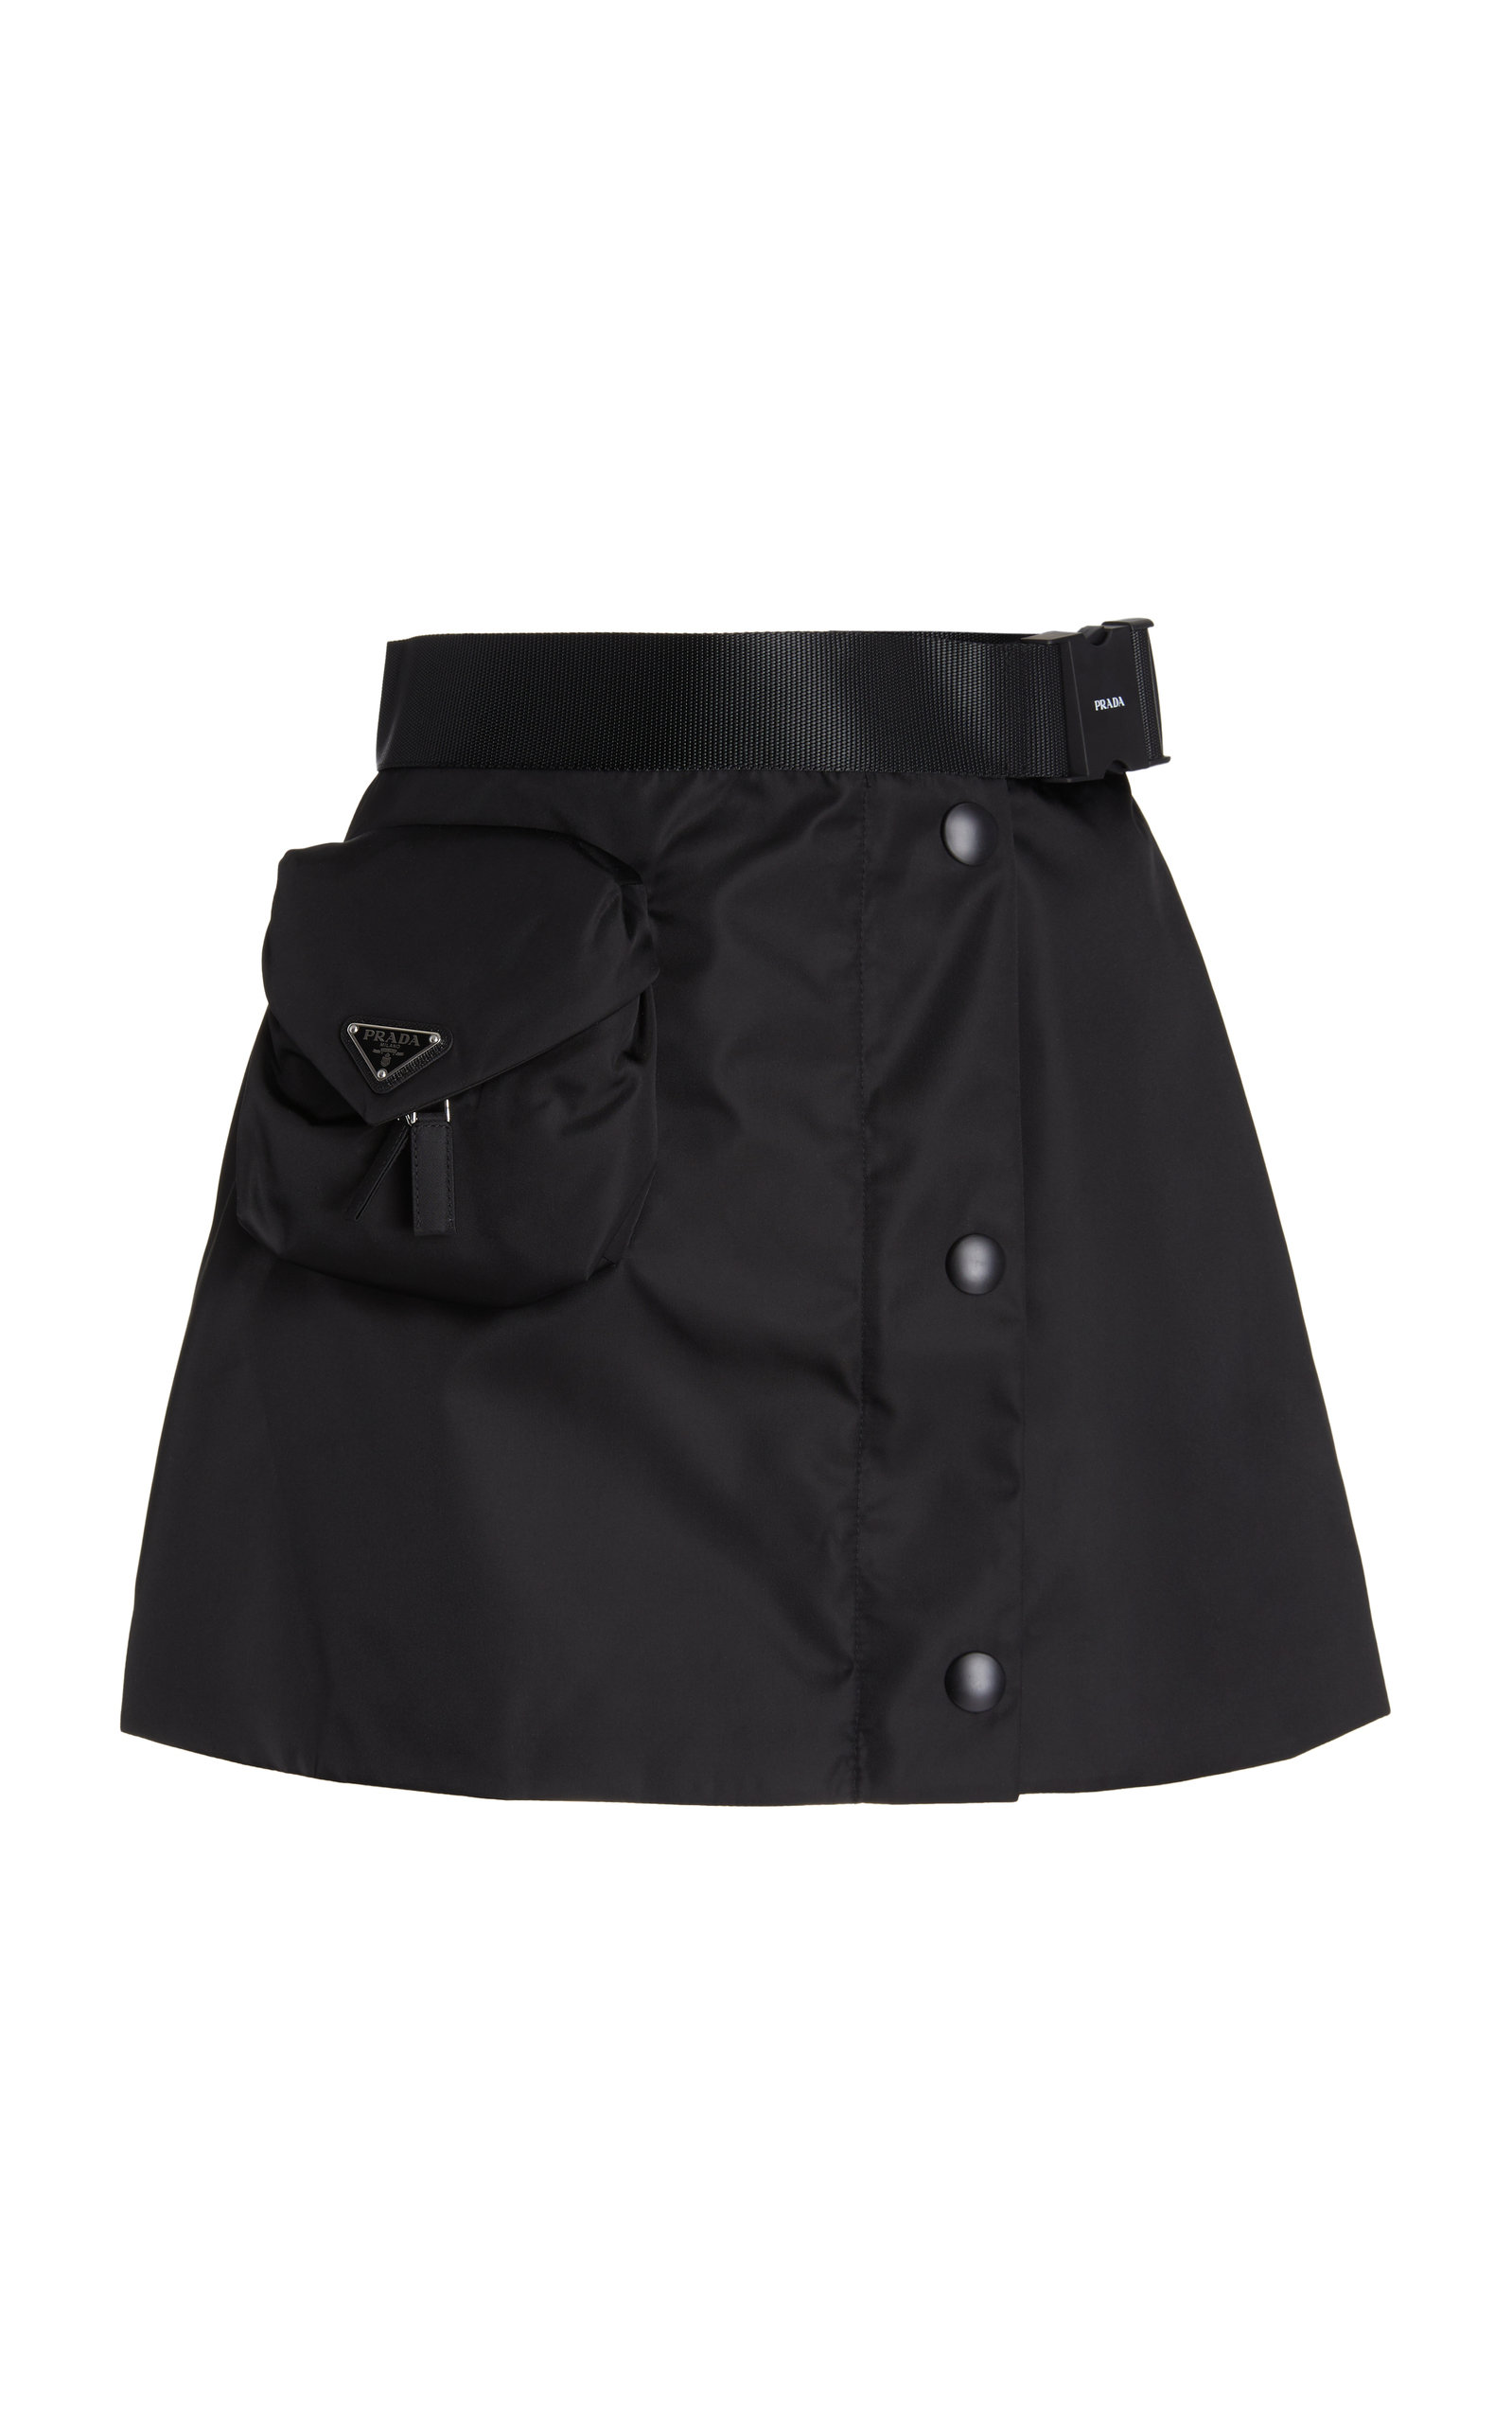 Prada LOGO-DETAILED NYLON GABERDINE MINI SKIRT